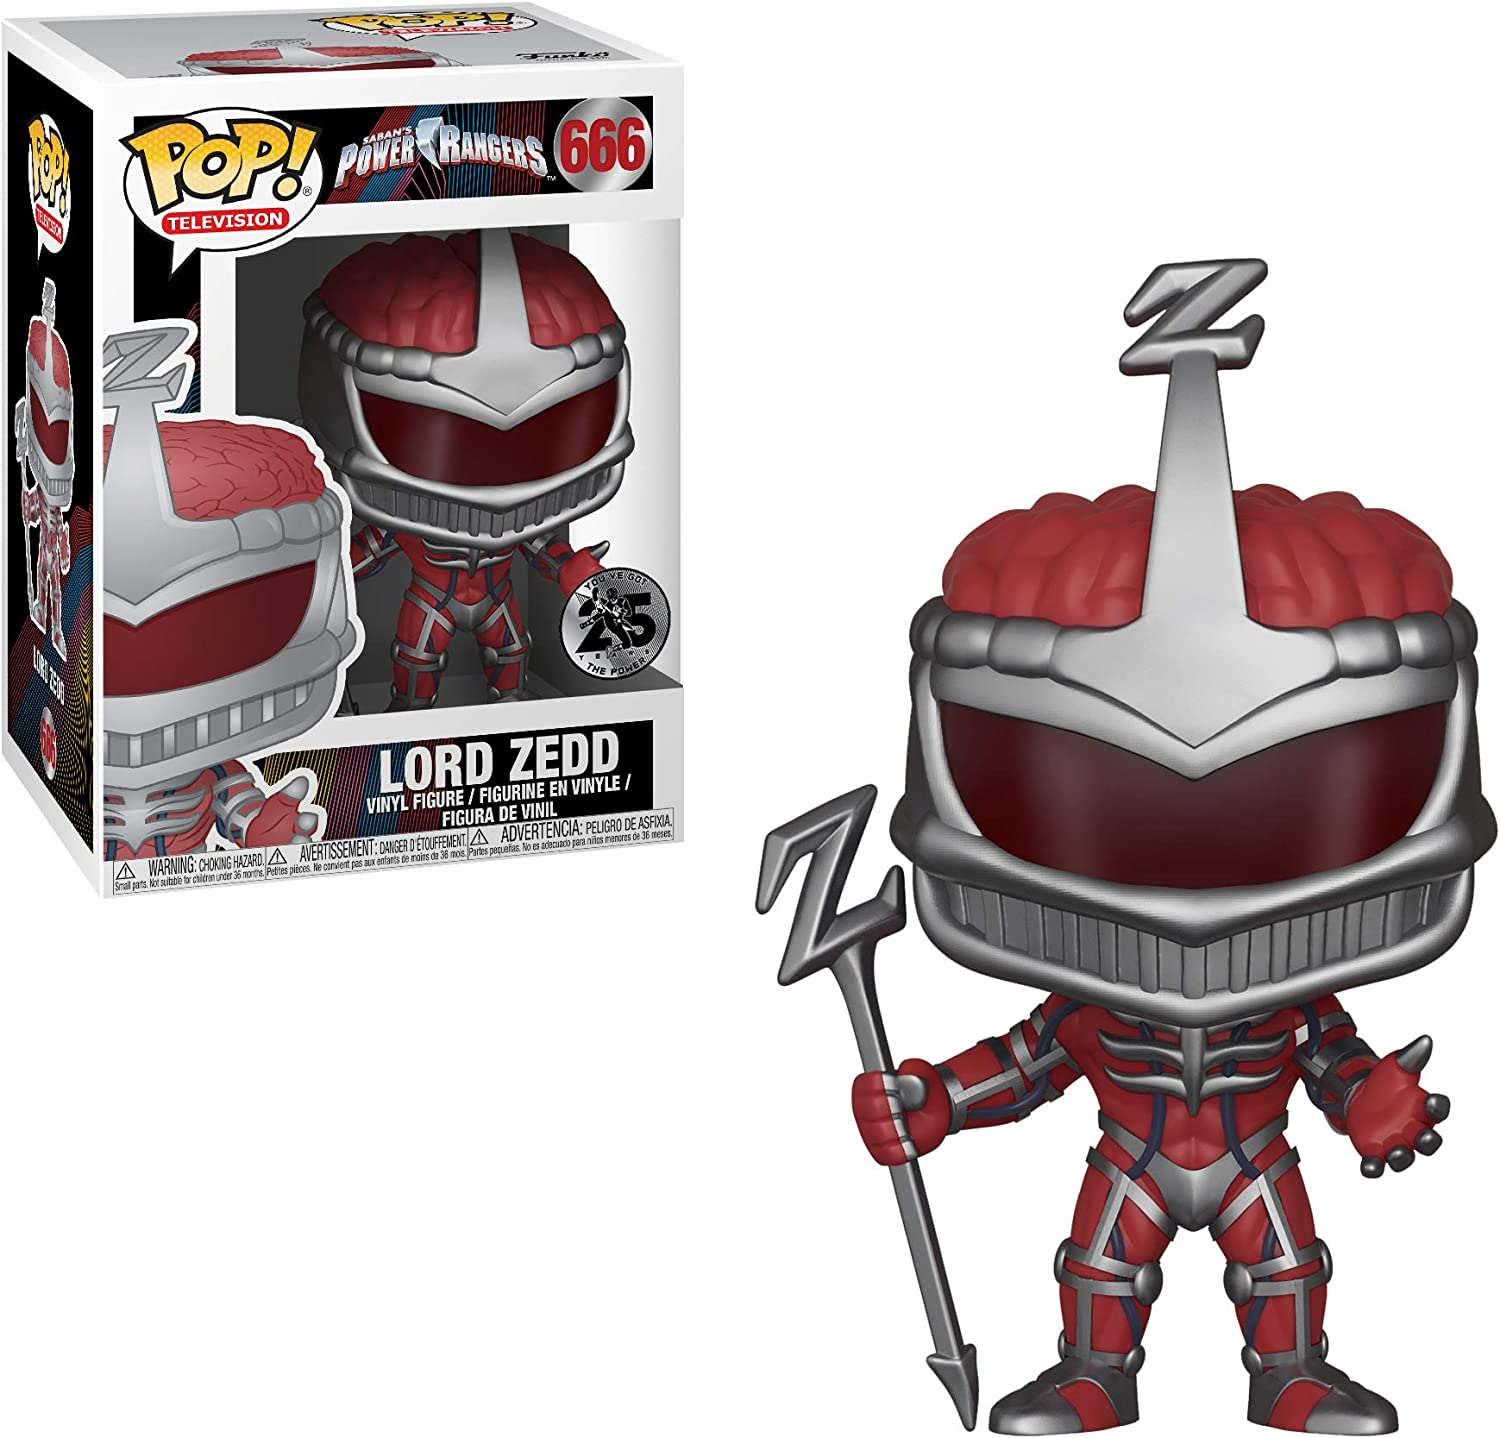 Set Goldar Funko 266  TV: Power Rangers Series 7 Villians Collectors Rita Repulsa Lord Zedd